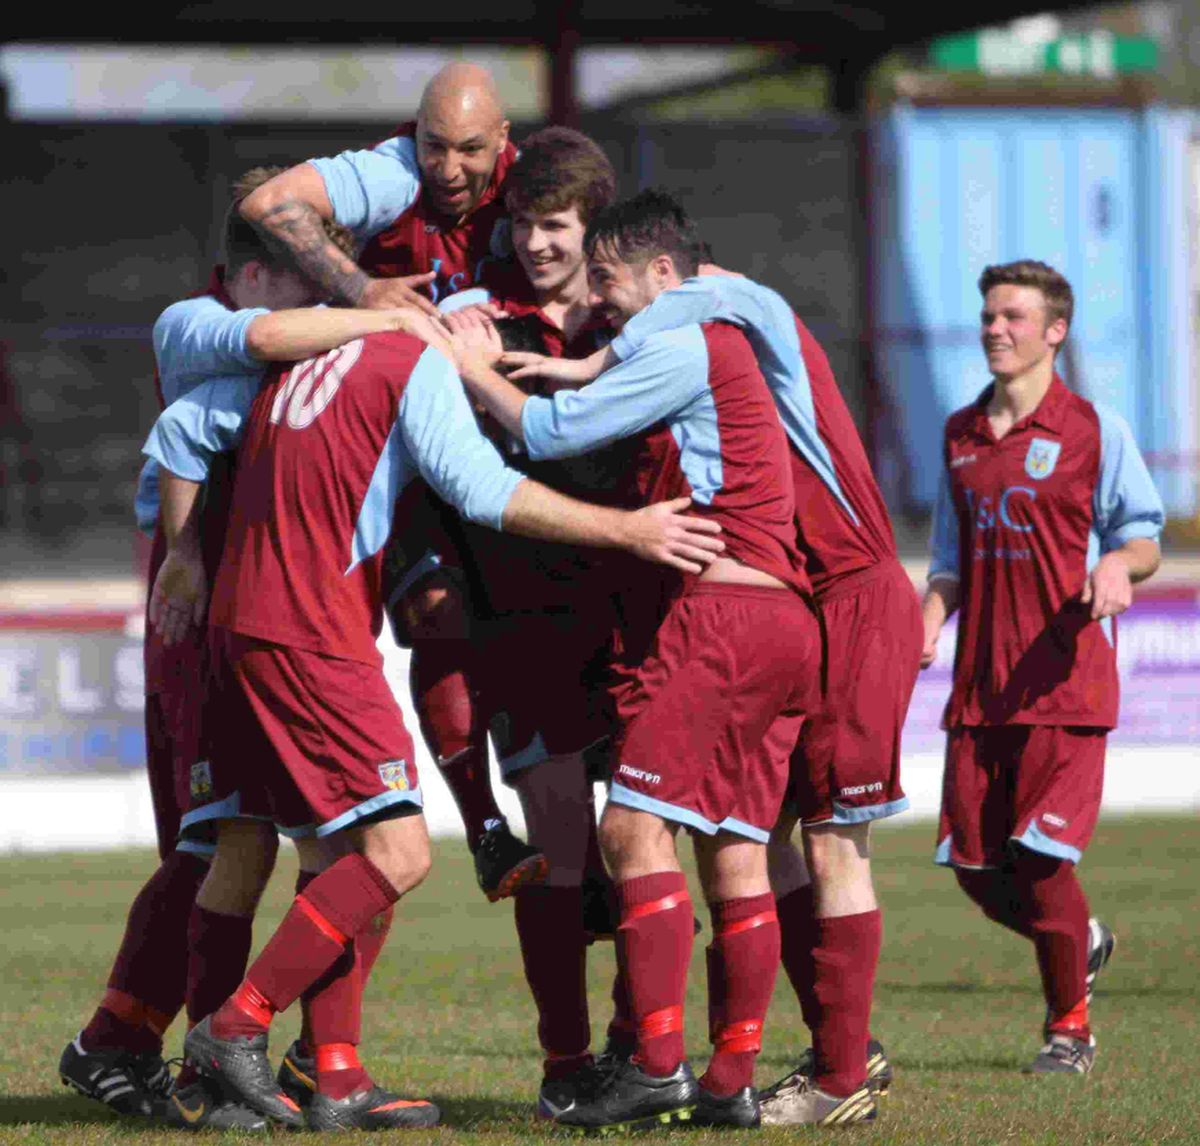 CLASSY CARL: Carl McClements is mobbed by his team-mates after scoring